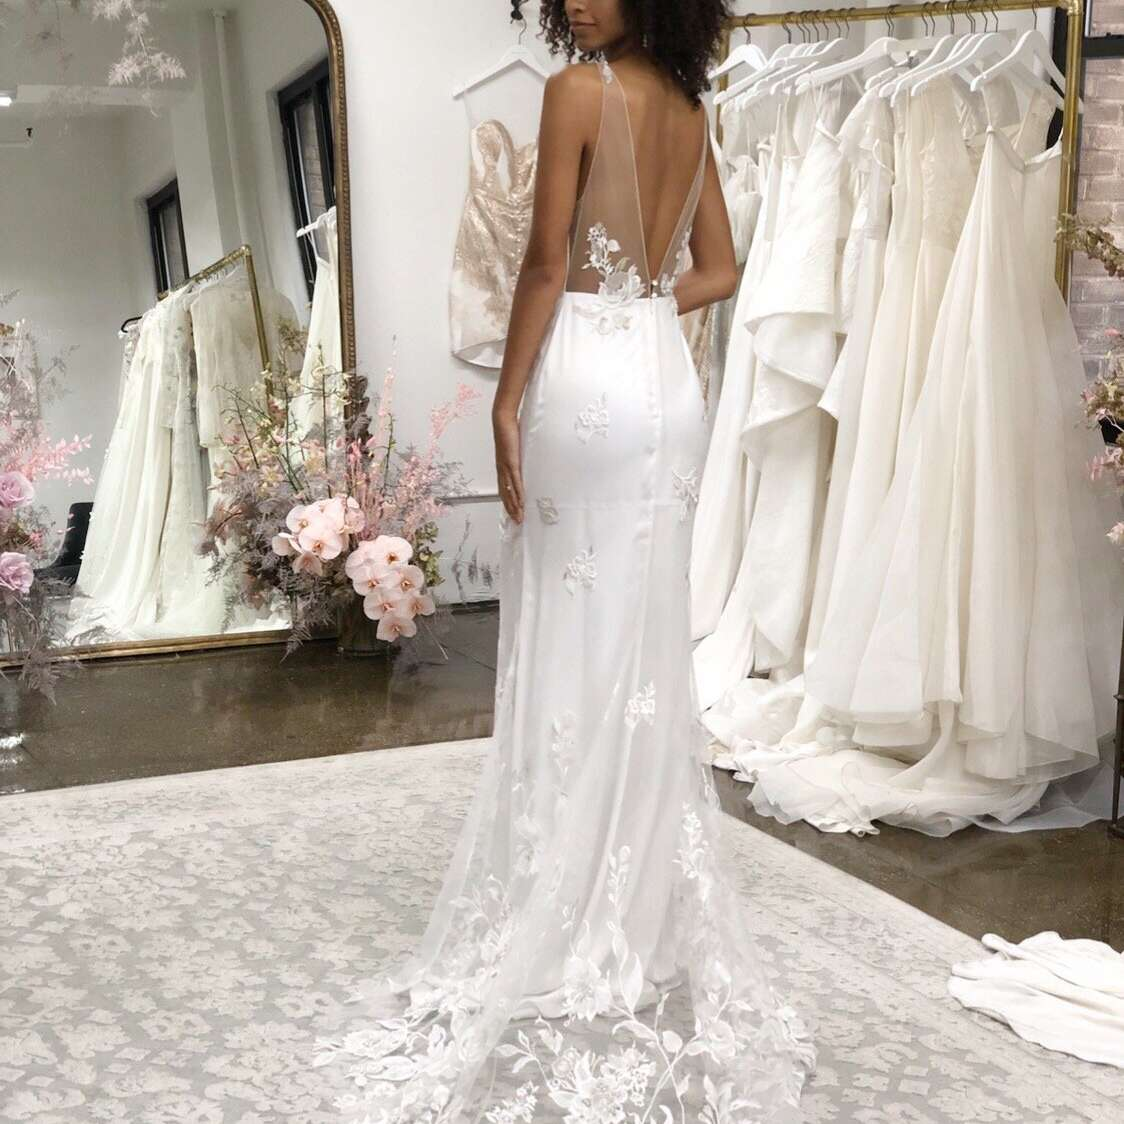 Model in bridal gown with sheer train with floral embroidery